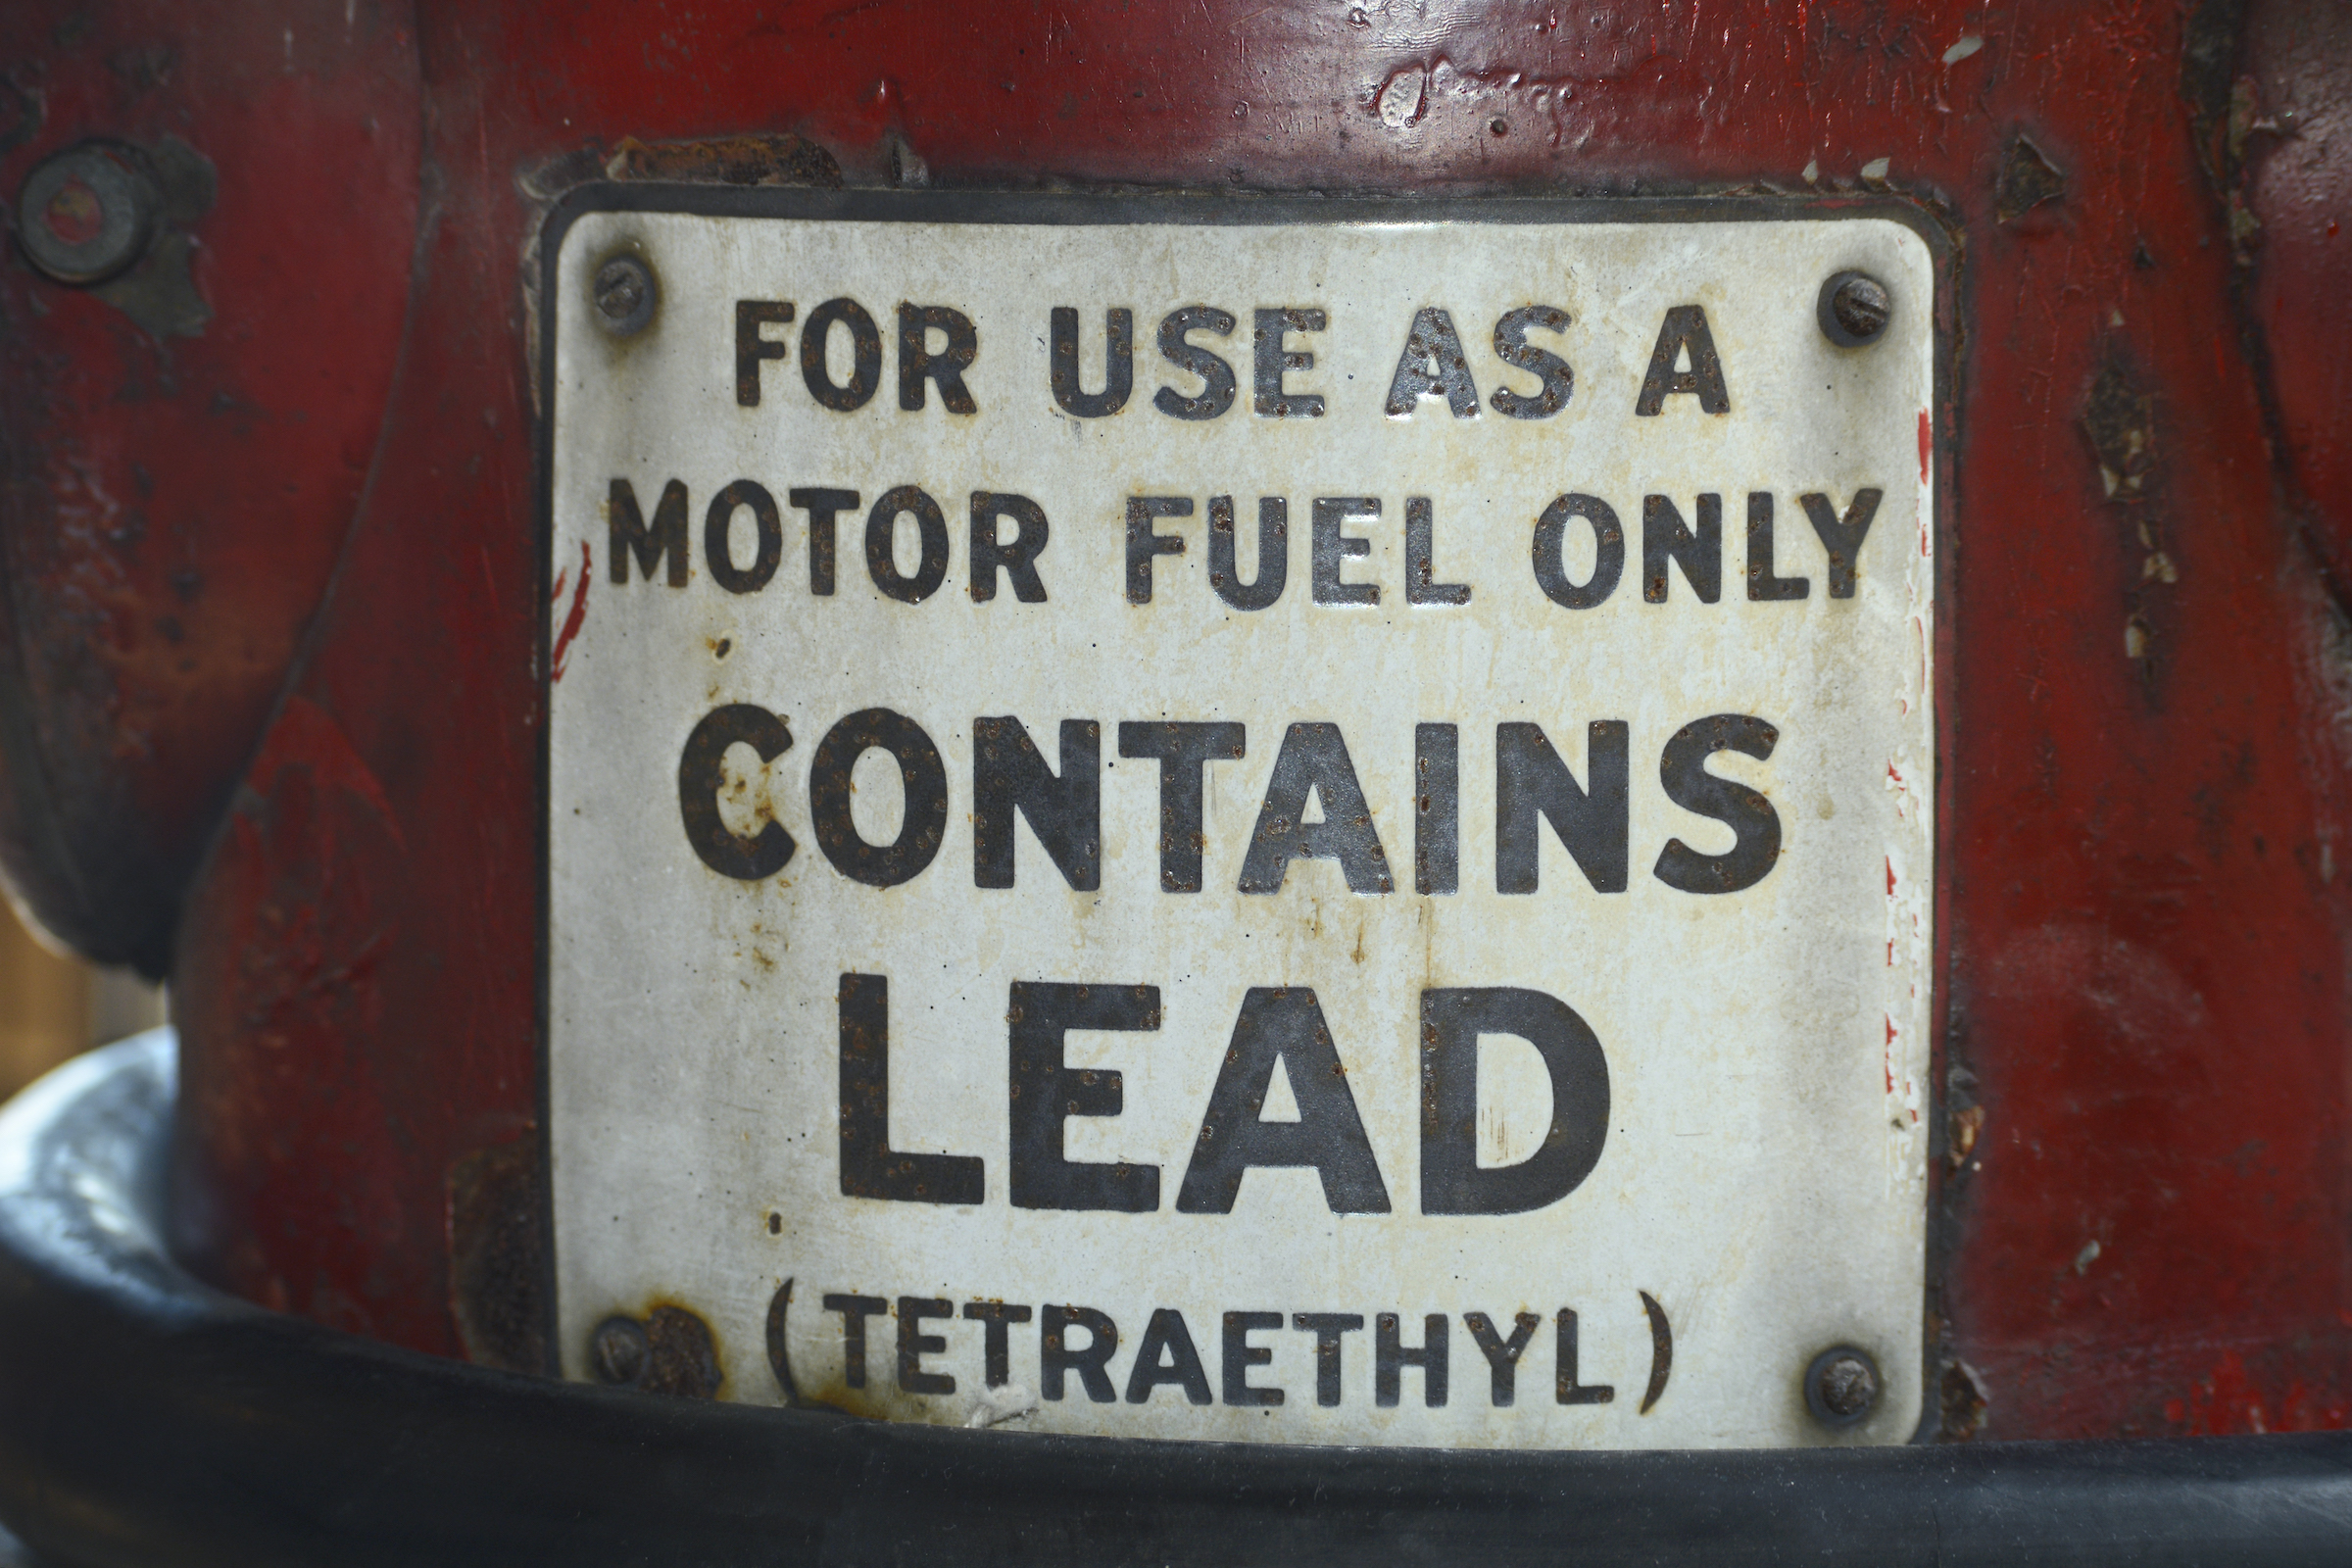 End of the road for leaded petrol